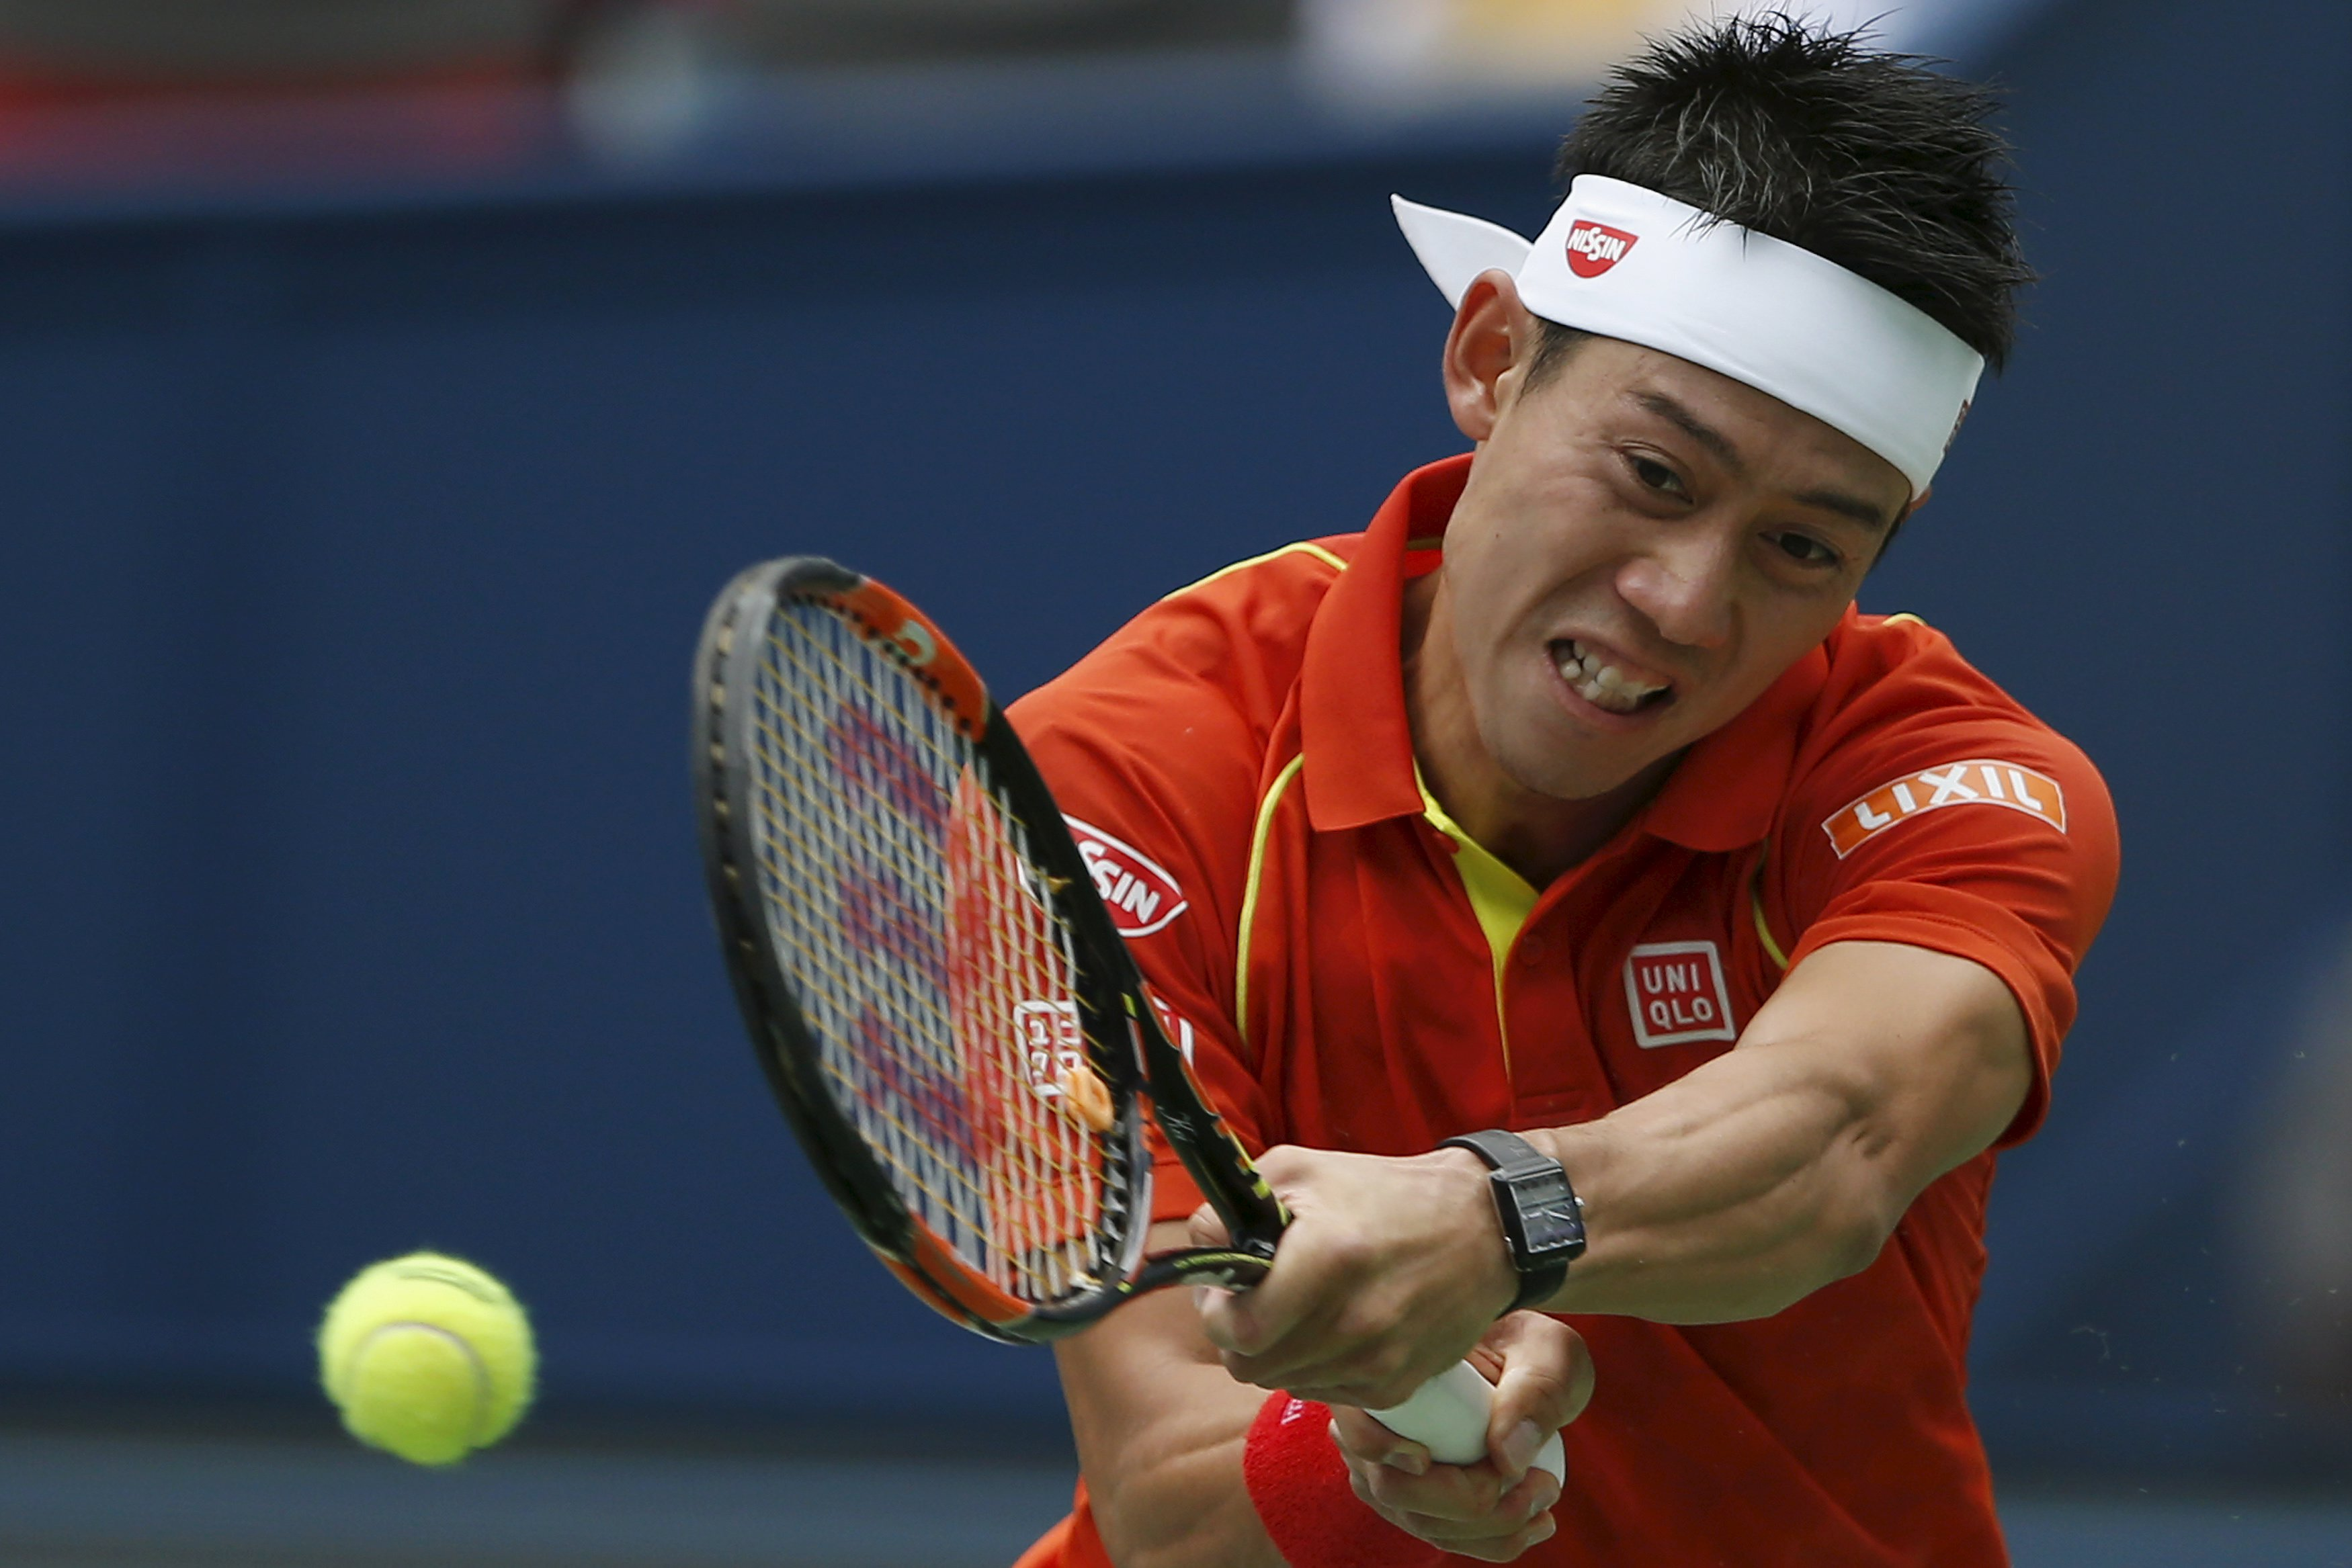 Kei Nishikori hits a shot during his match against Nick Kyrgios of Australia at the Shanghai Masters on Wednesday. | REUTERS